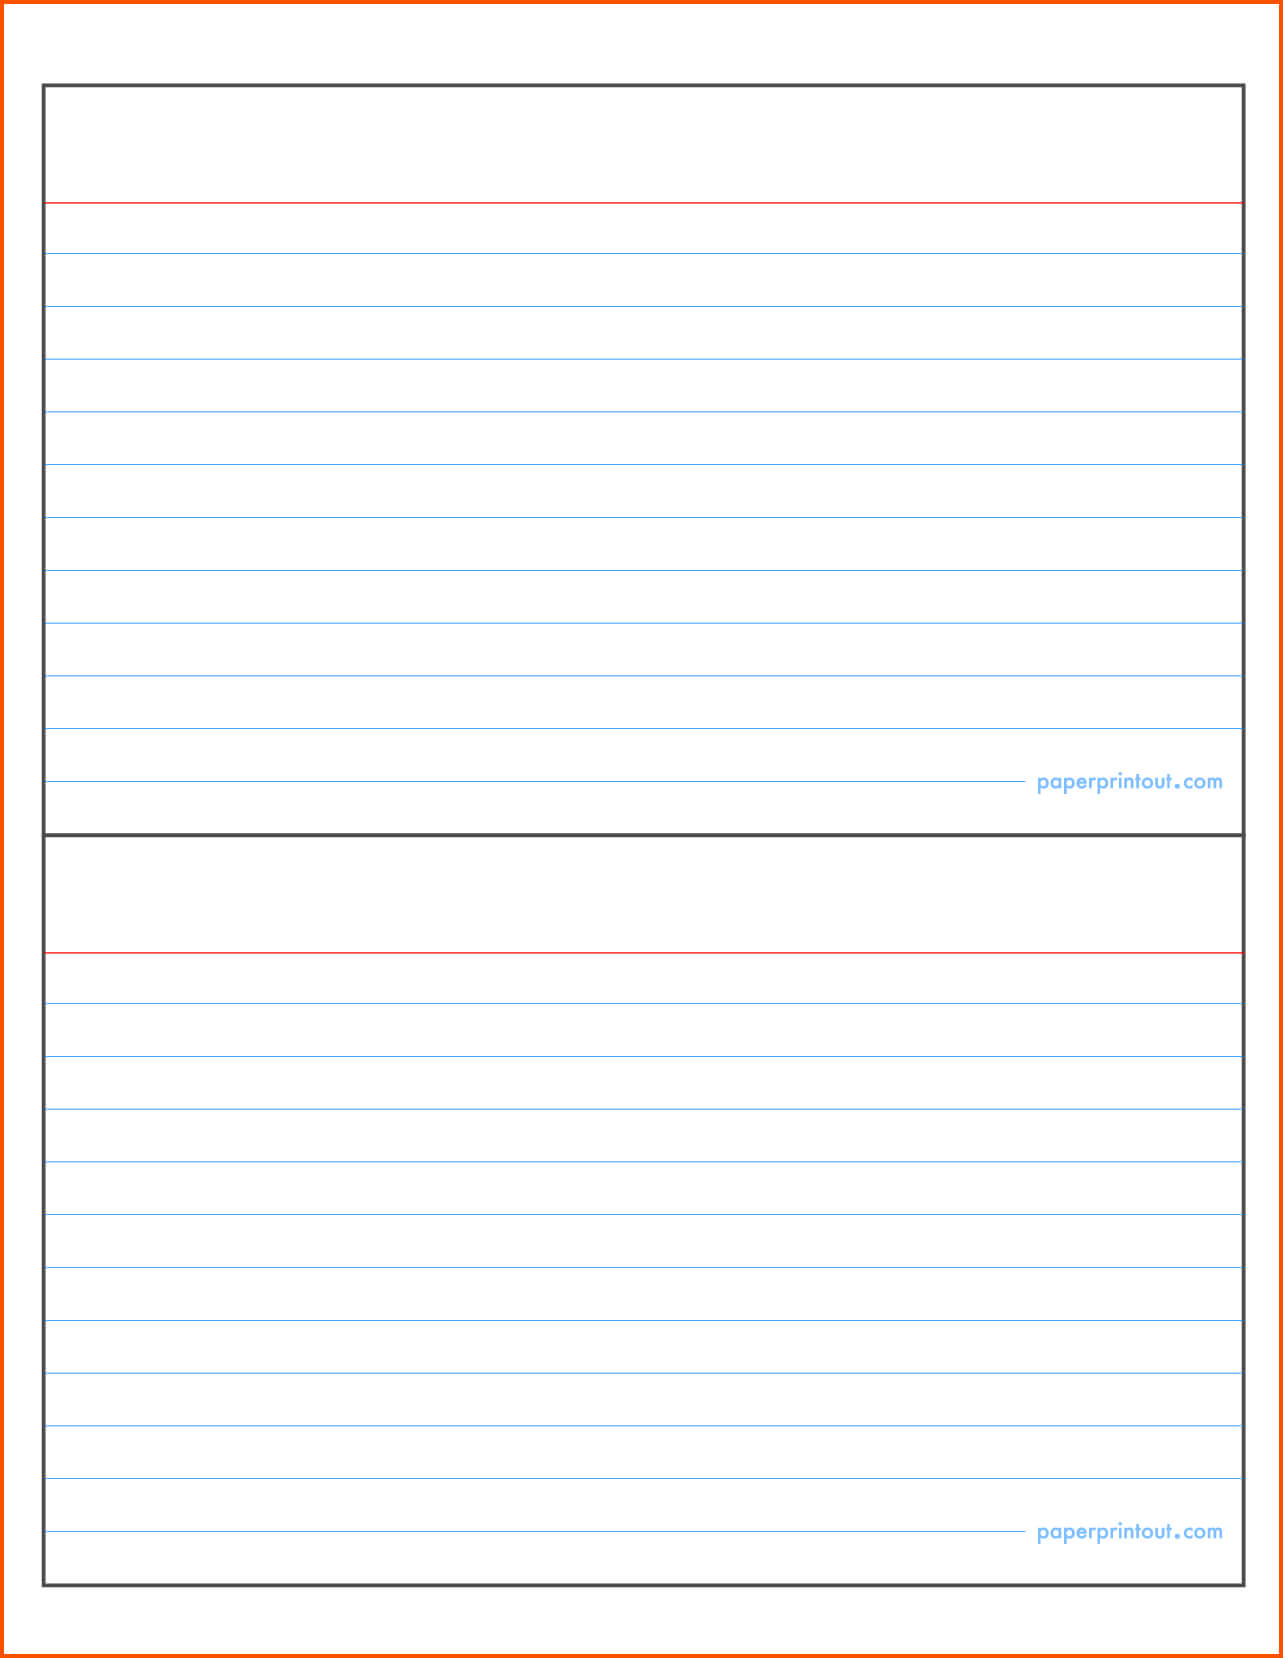 002 Template Ideas Note Card Word Index Cards 127998 For 3X5 Note Card Template For Word